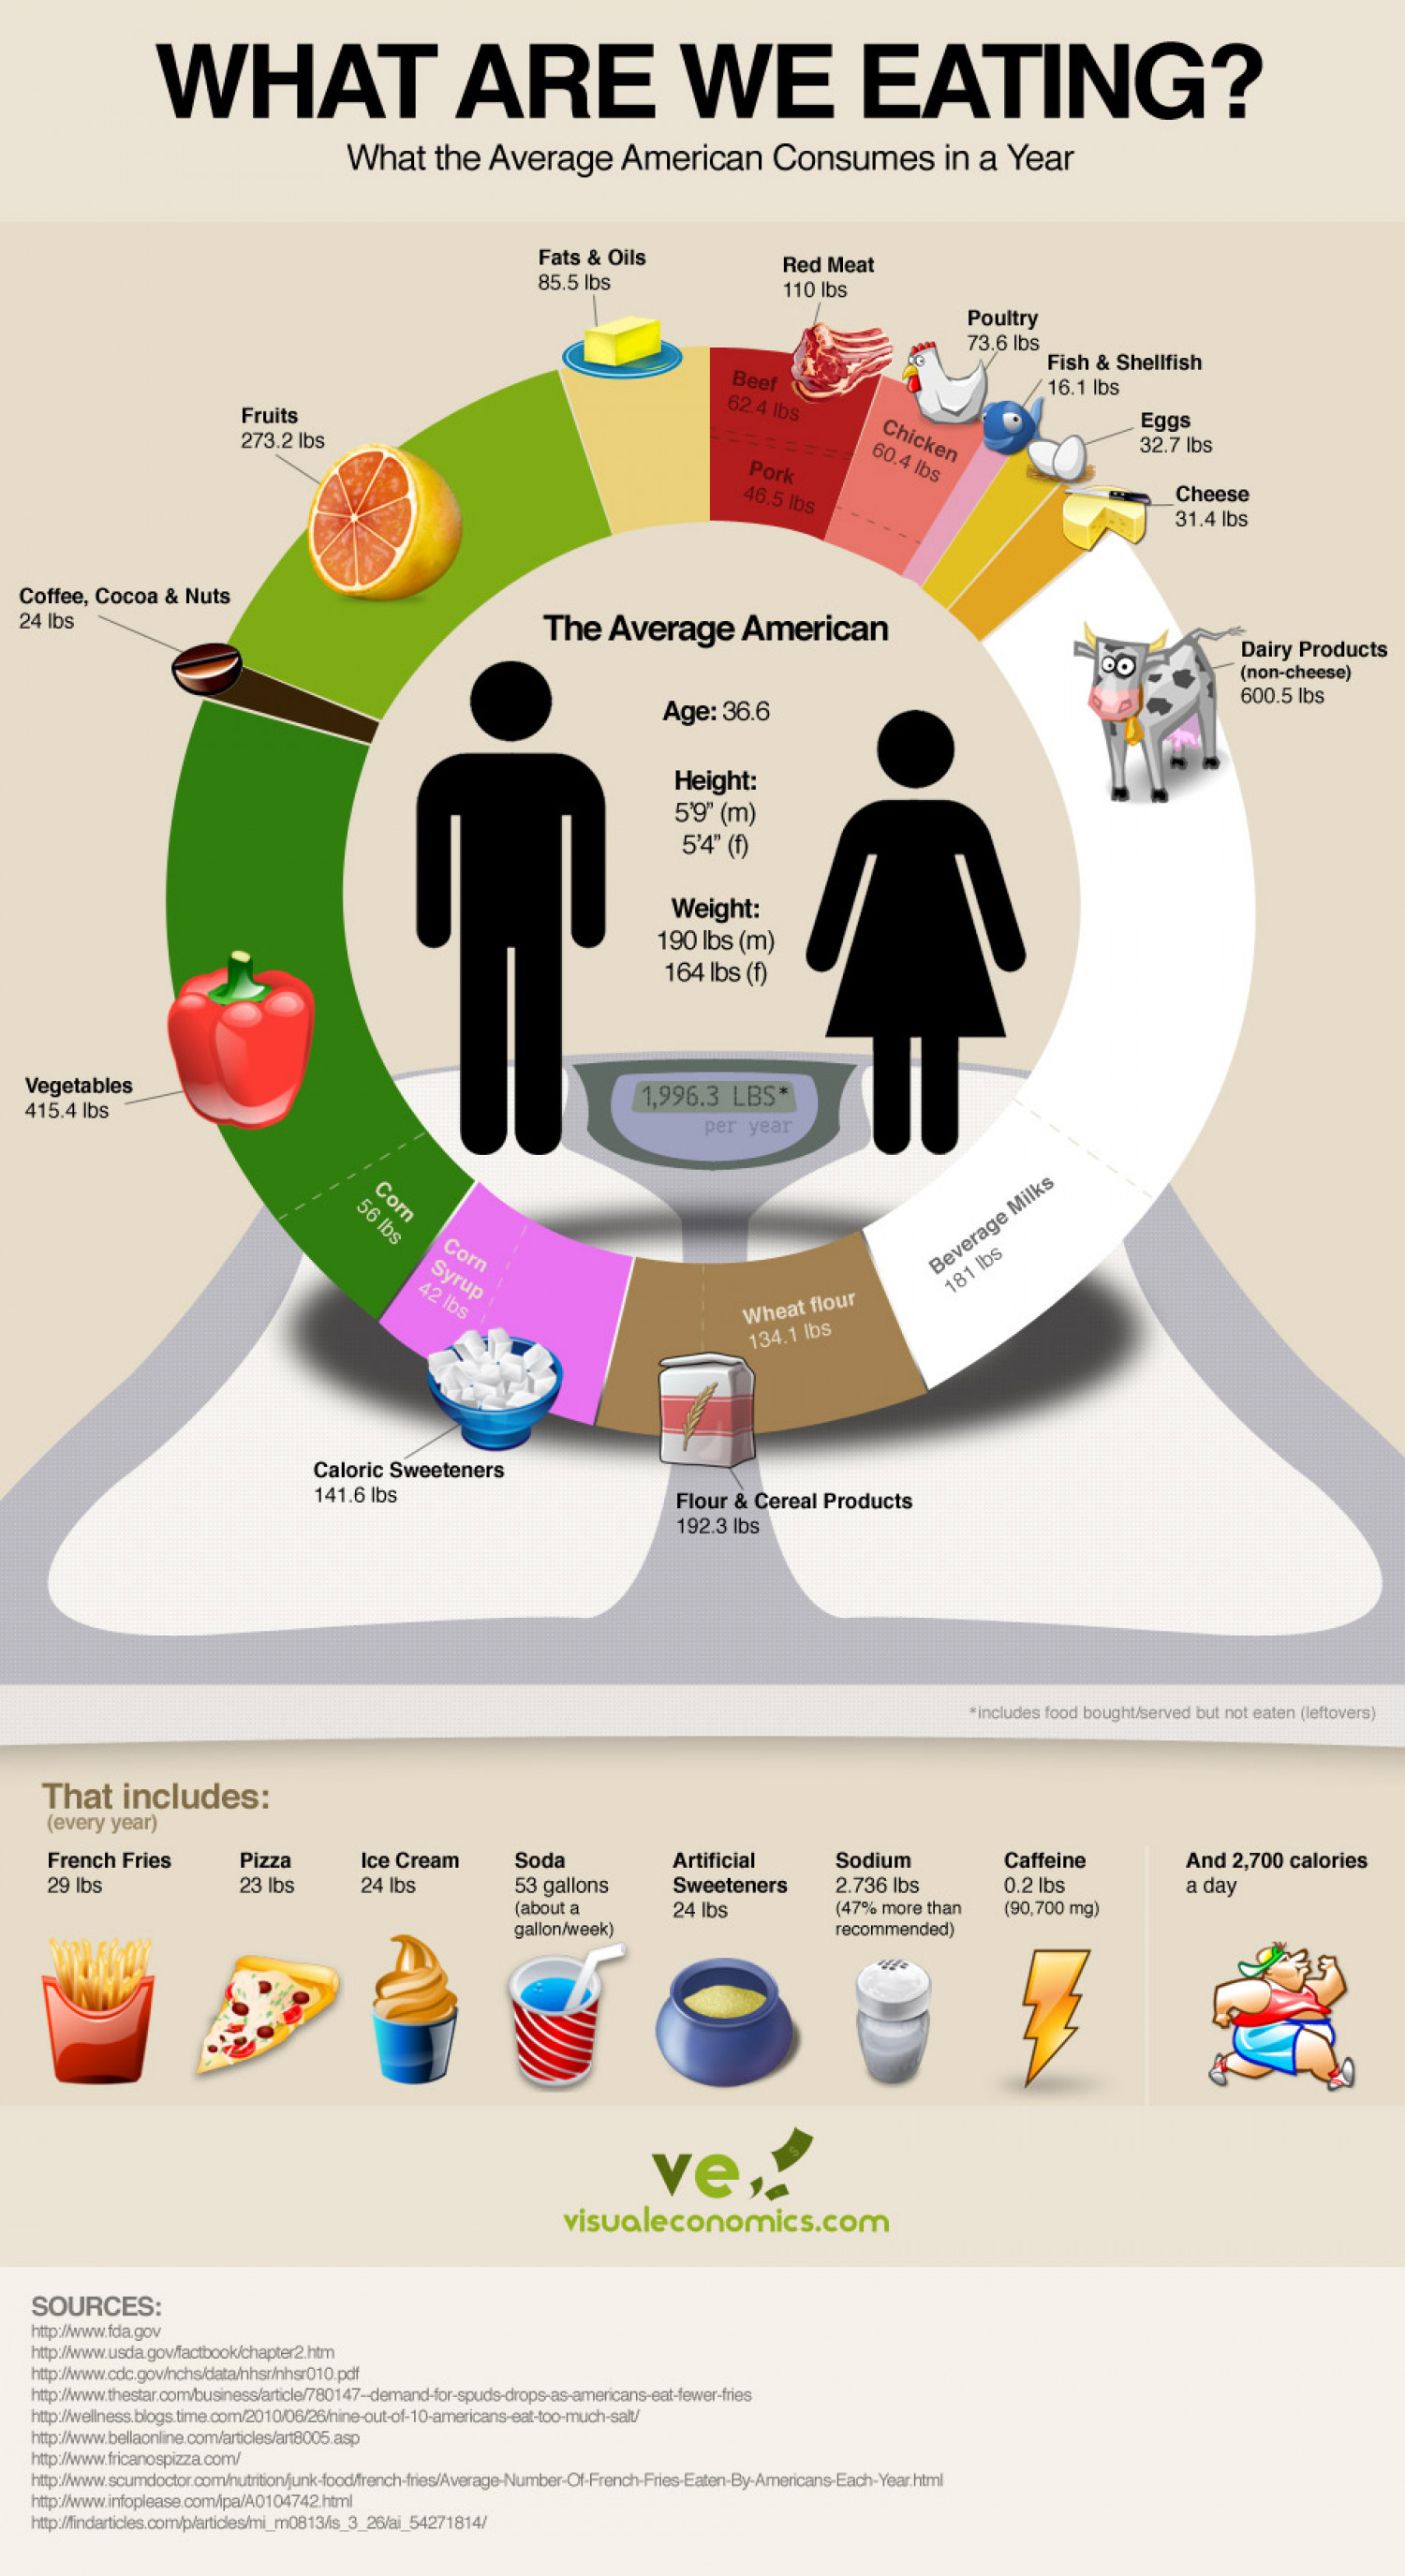 What Are We Eating? Infographic